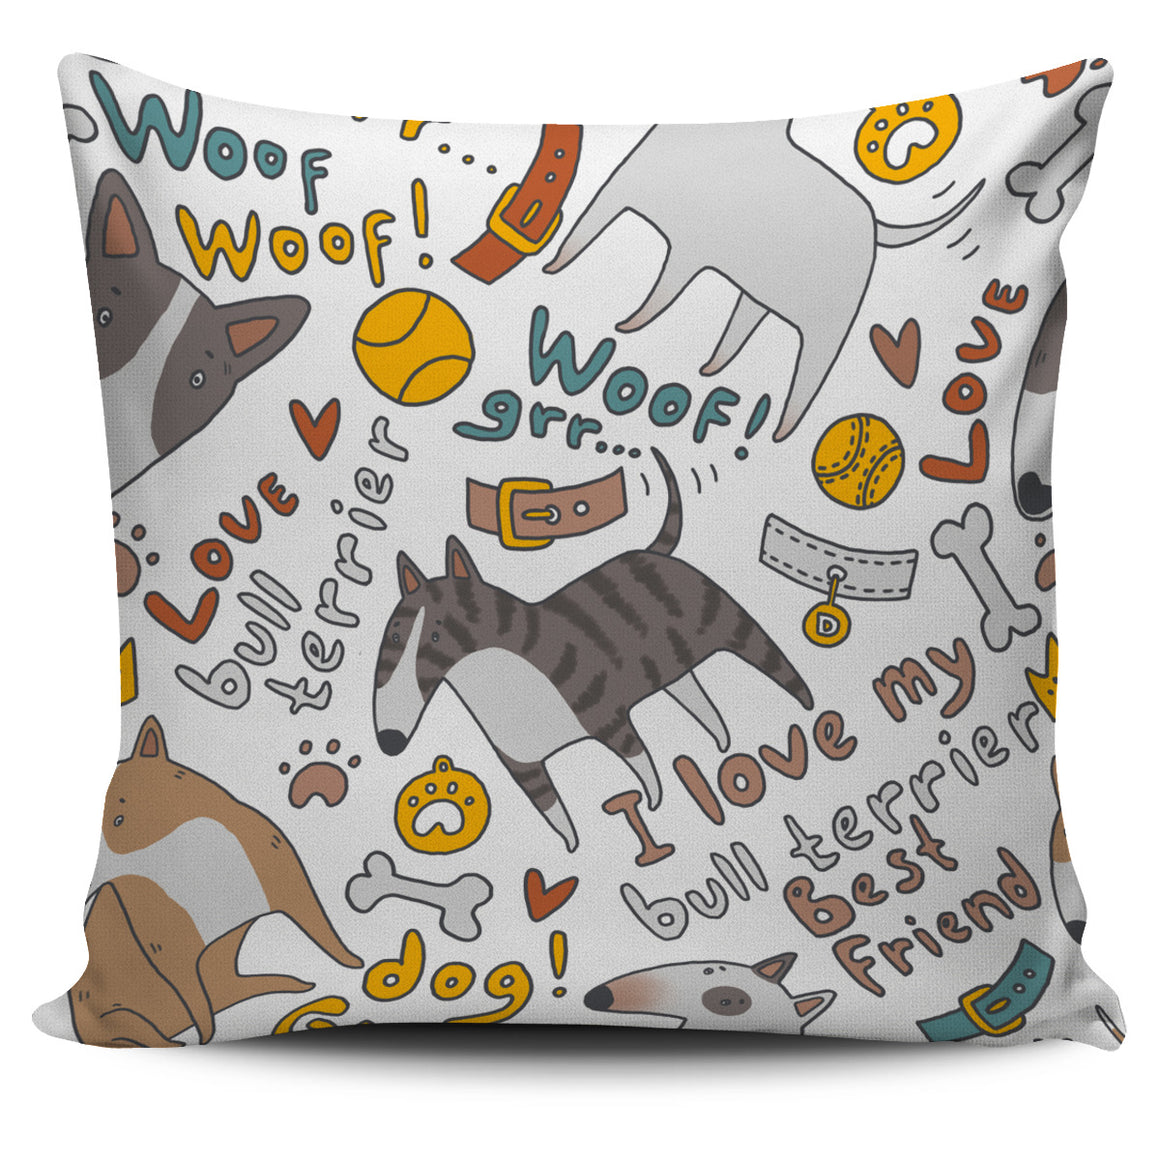 I Love My Bull Terrier Themed Pillow Cover